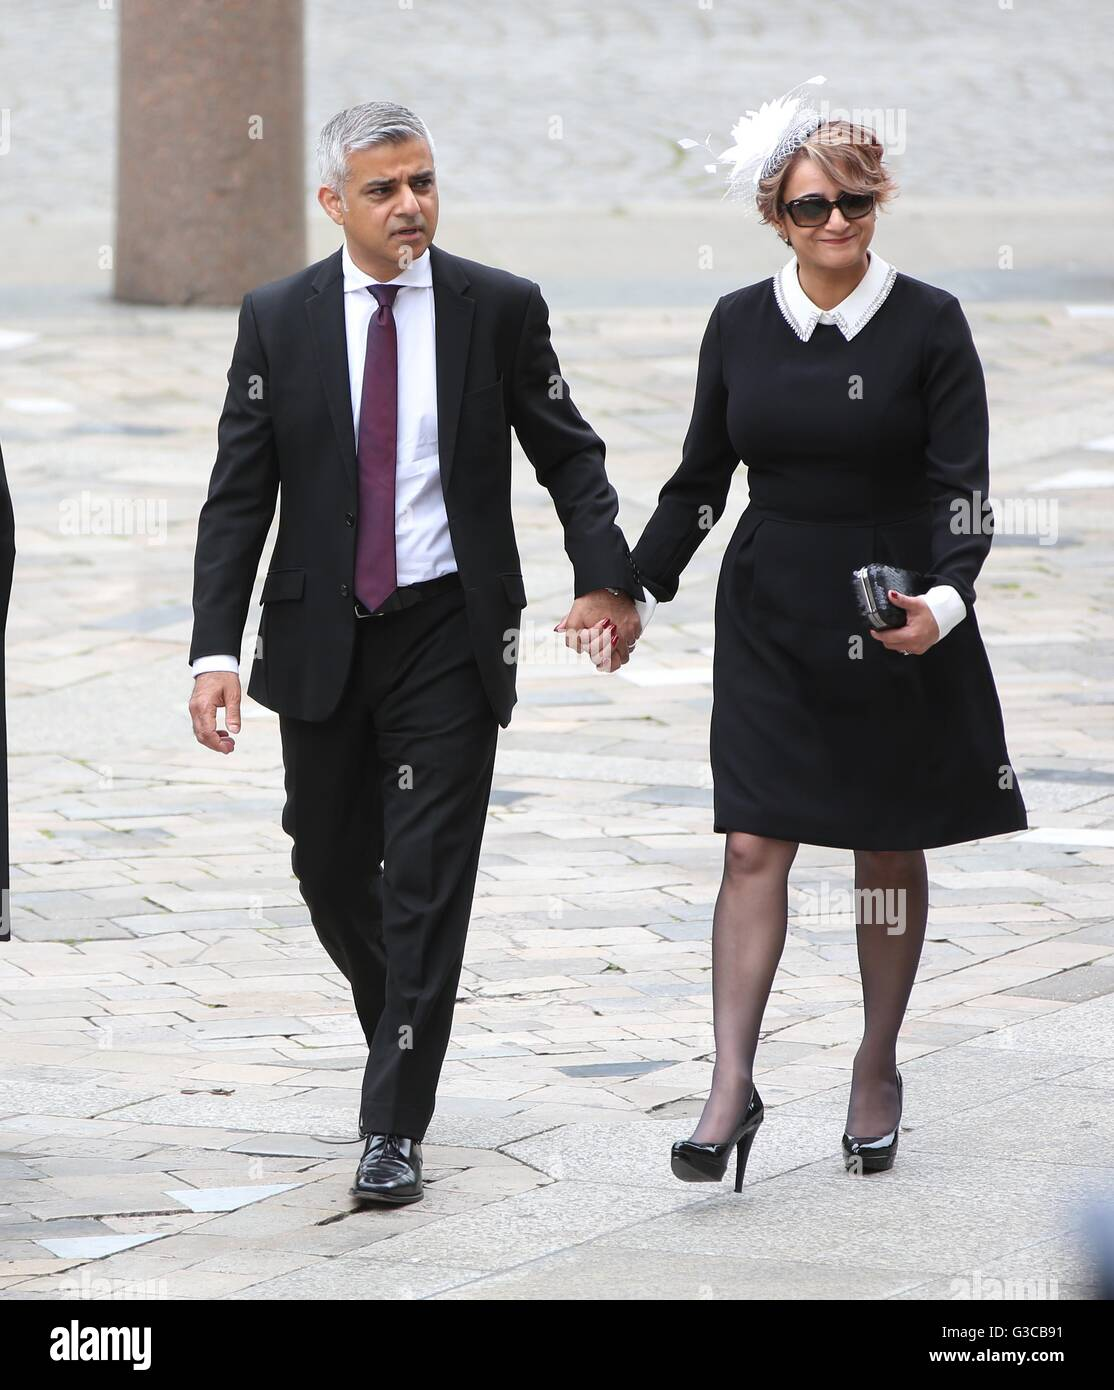 Mayor of London Sadiq Khan and wife Saadiya arrives at St Paul's Cathedral in London for a national service - Stock Image